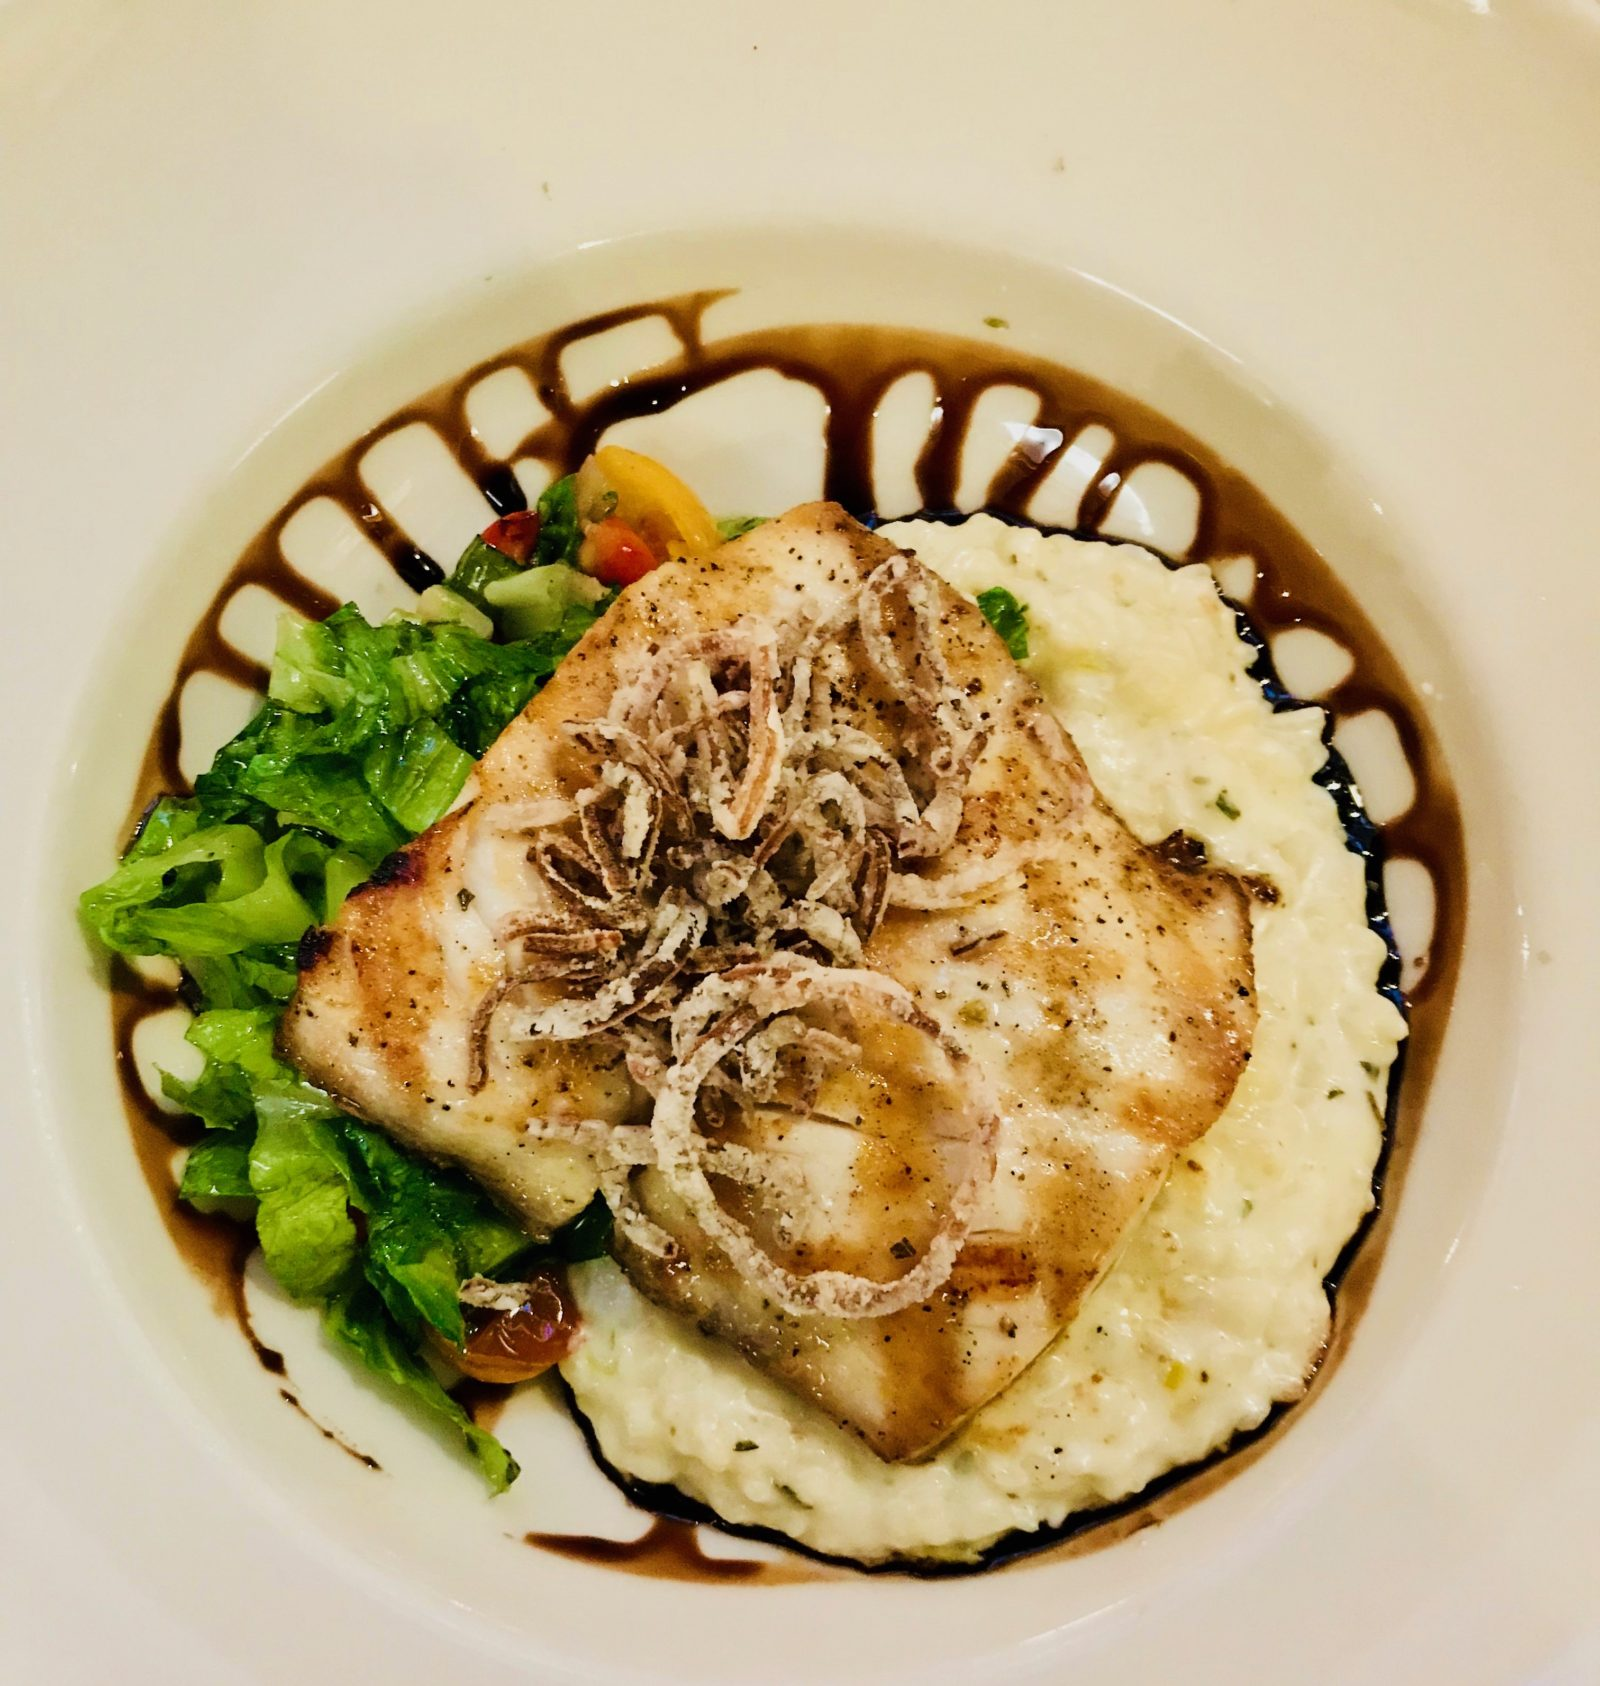 Pick of the Week - Bluewater Grill - Grilled Mahi Mahi with Risotto